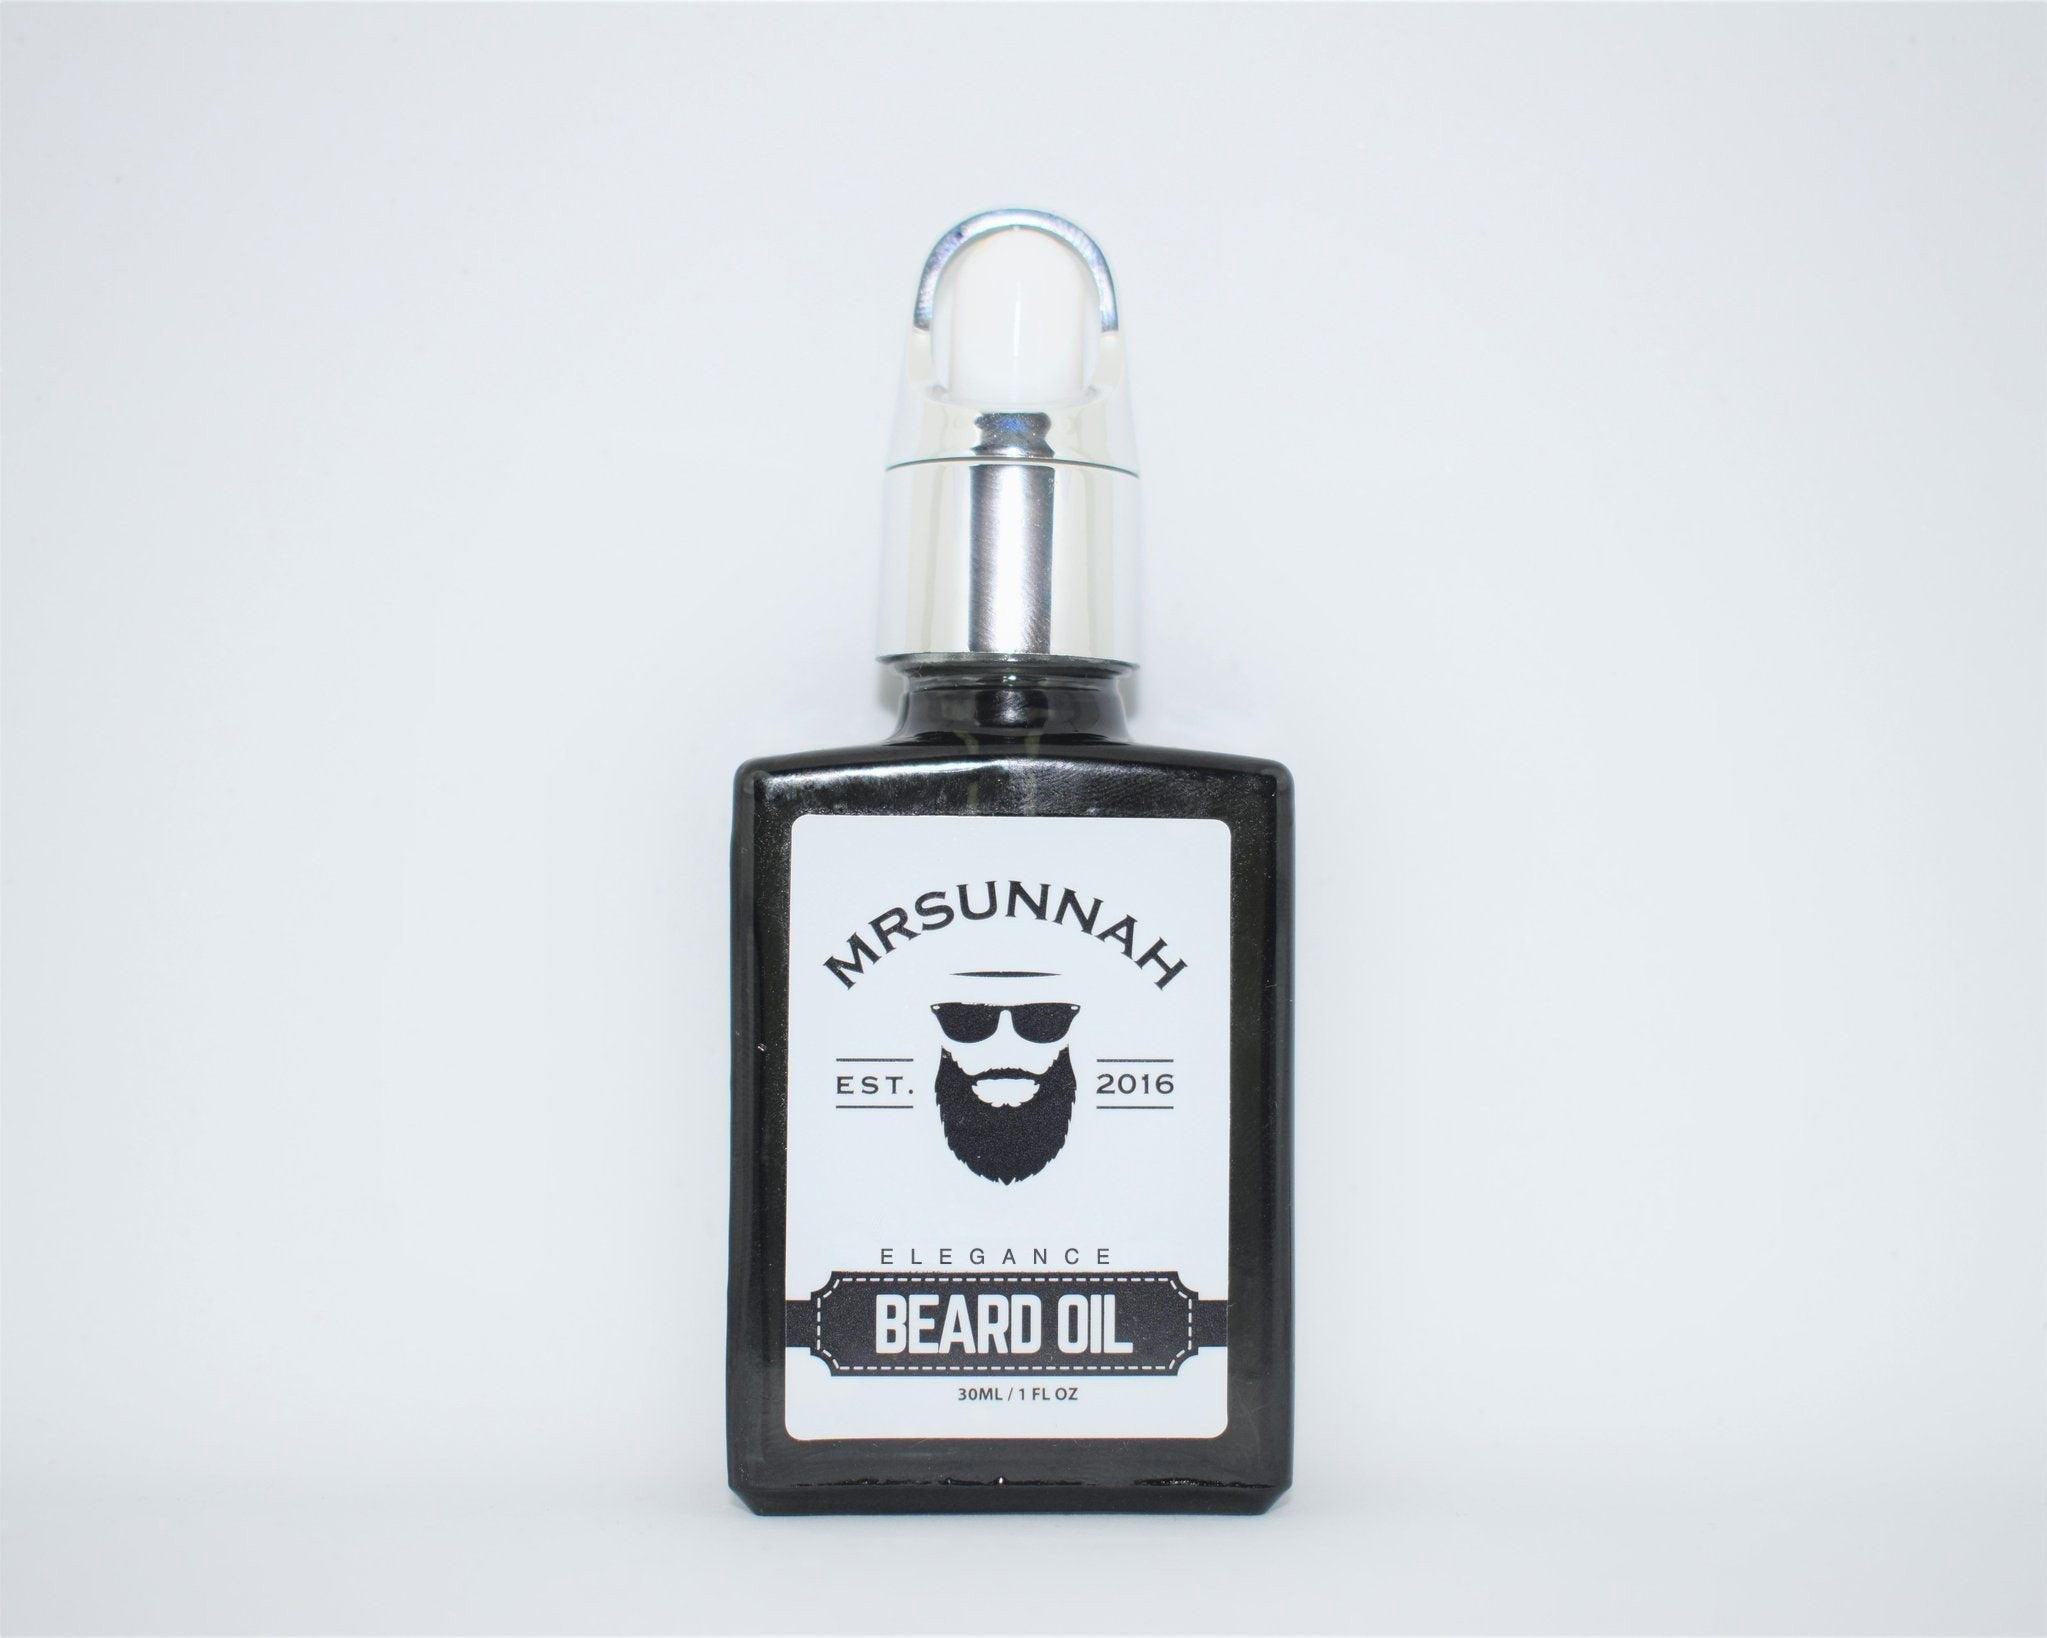 Elegance Beard Oil  (30ml) - Mrsunnah Grooming Co